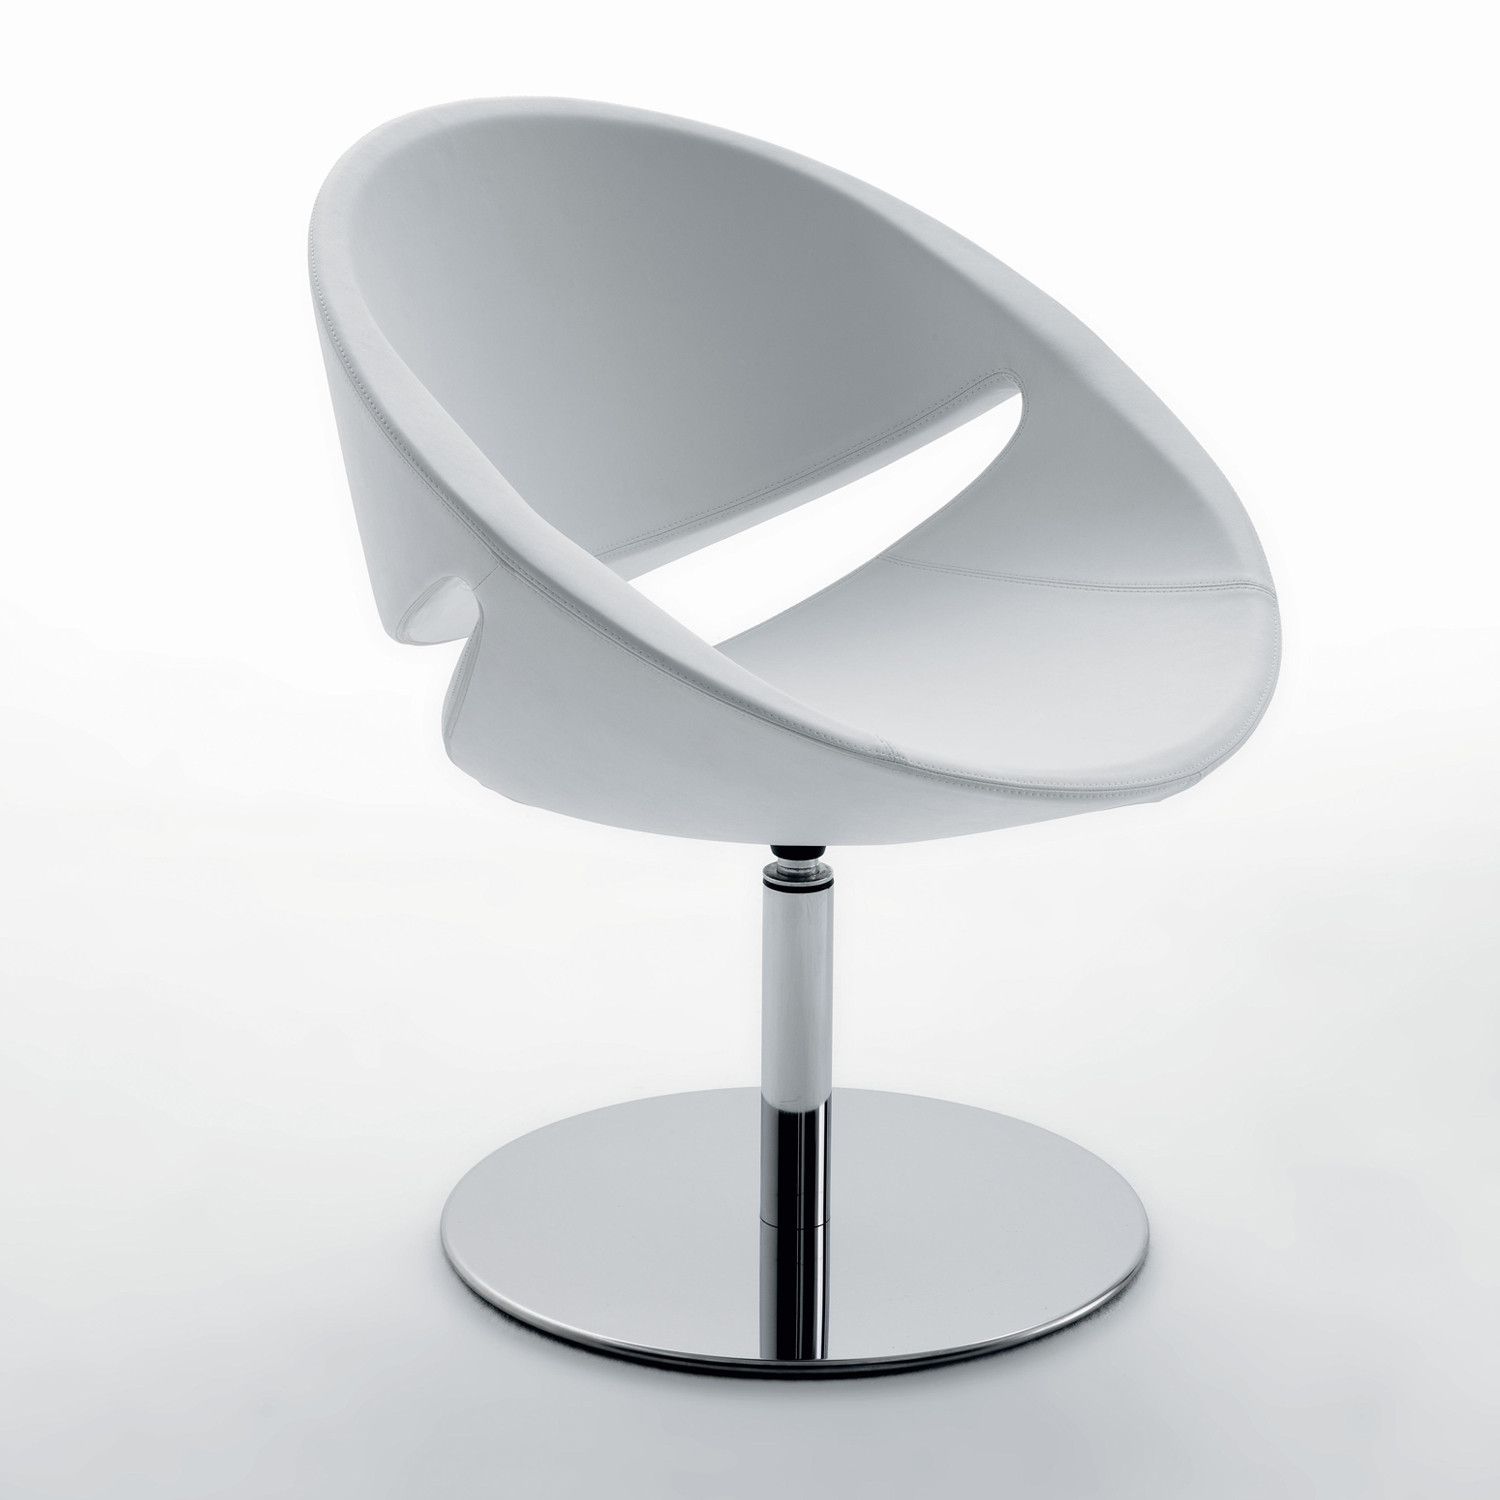 Mya Chair with round plate base